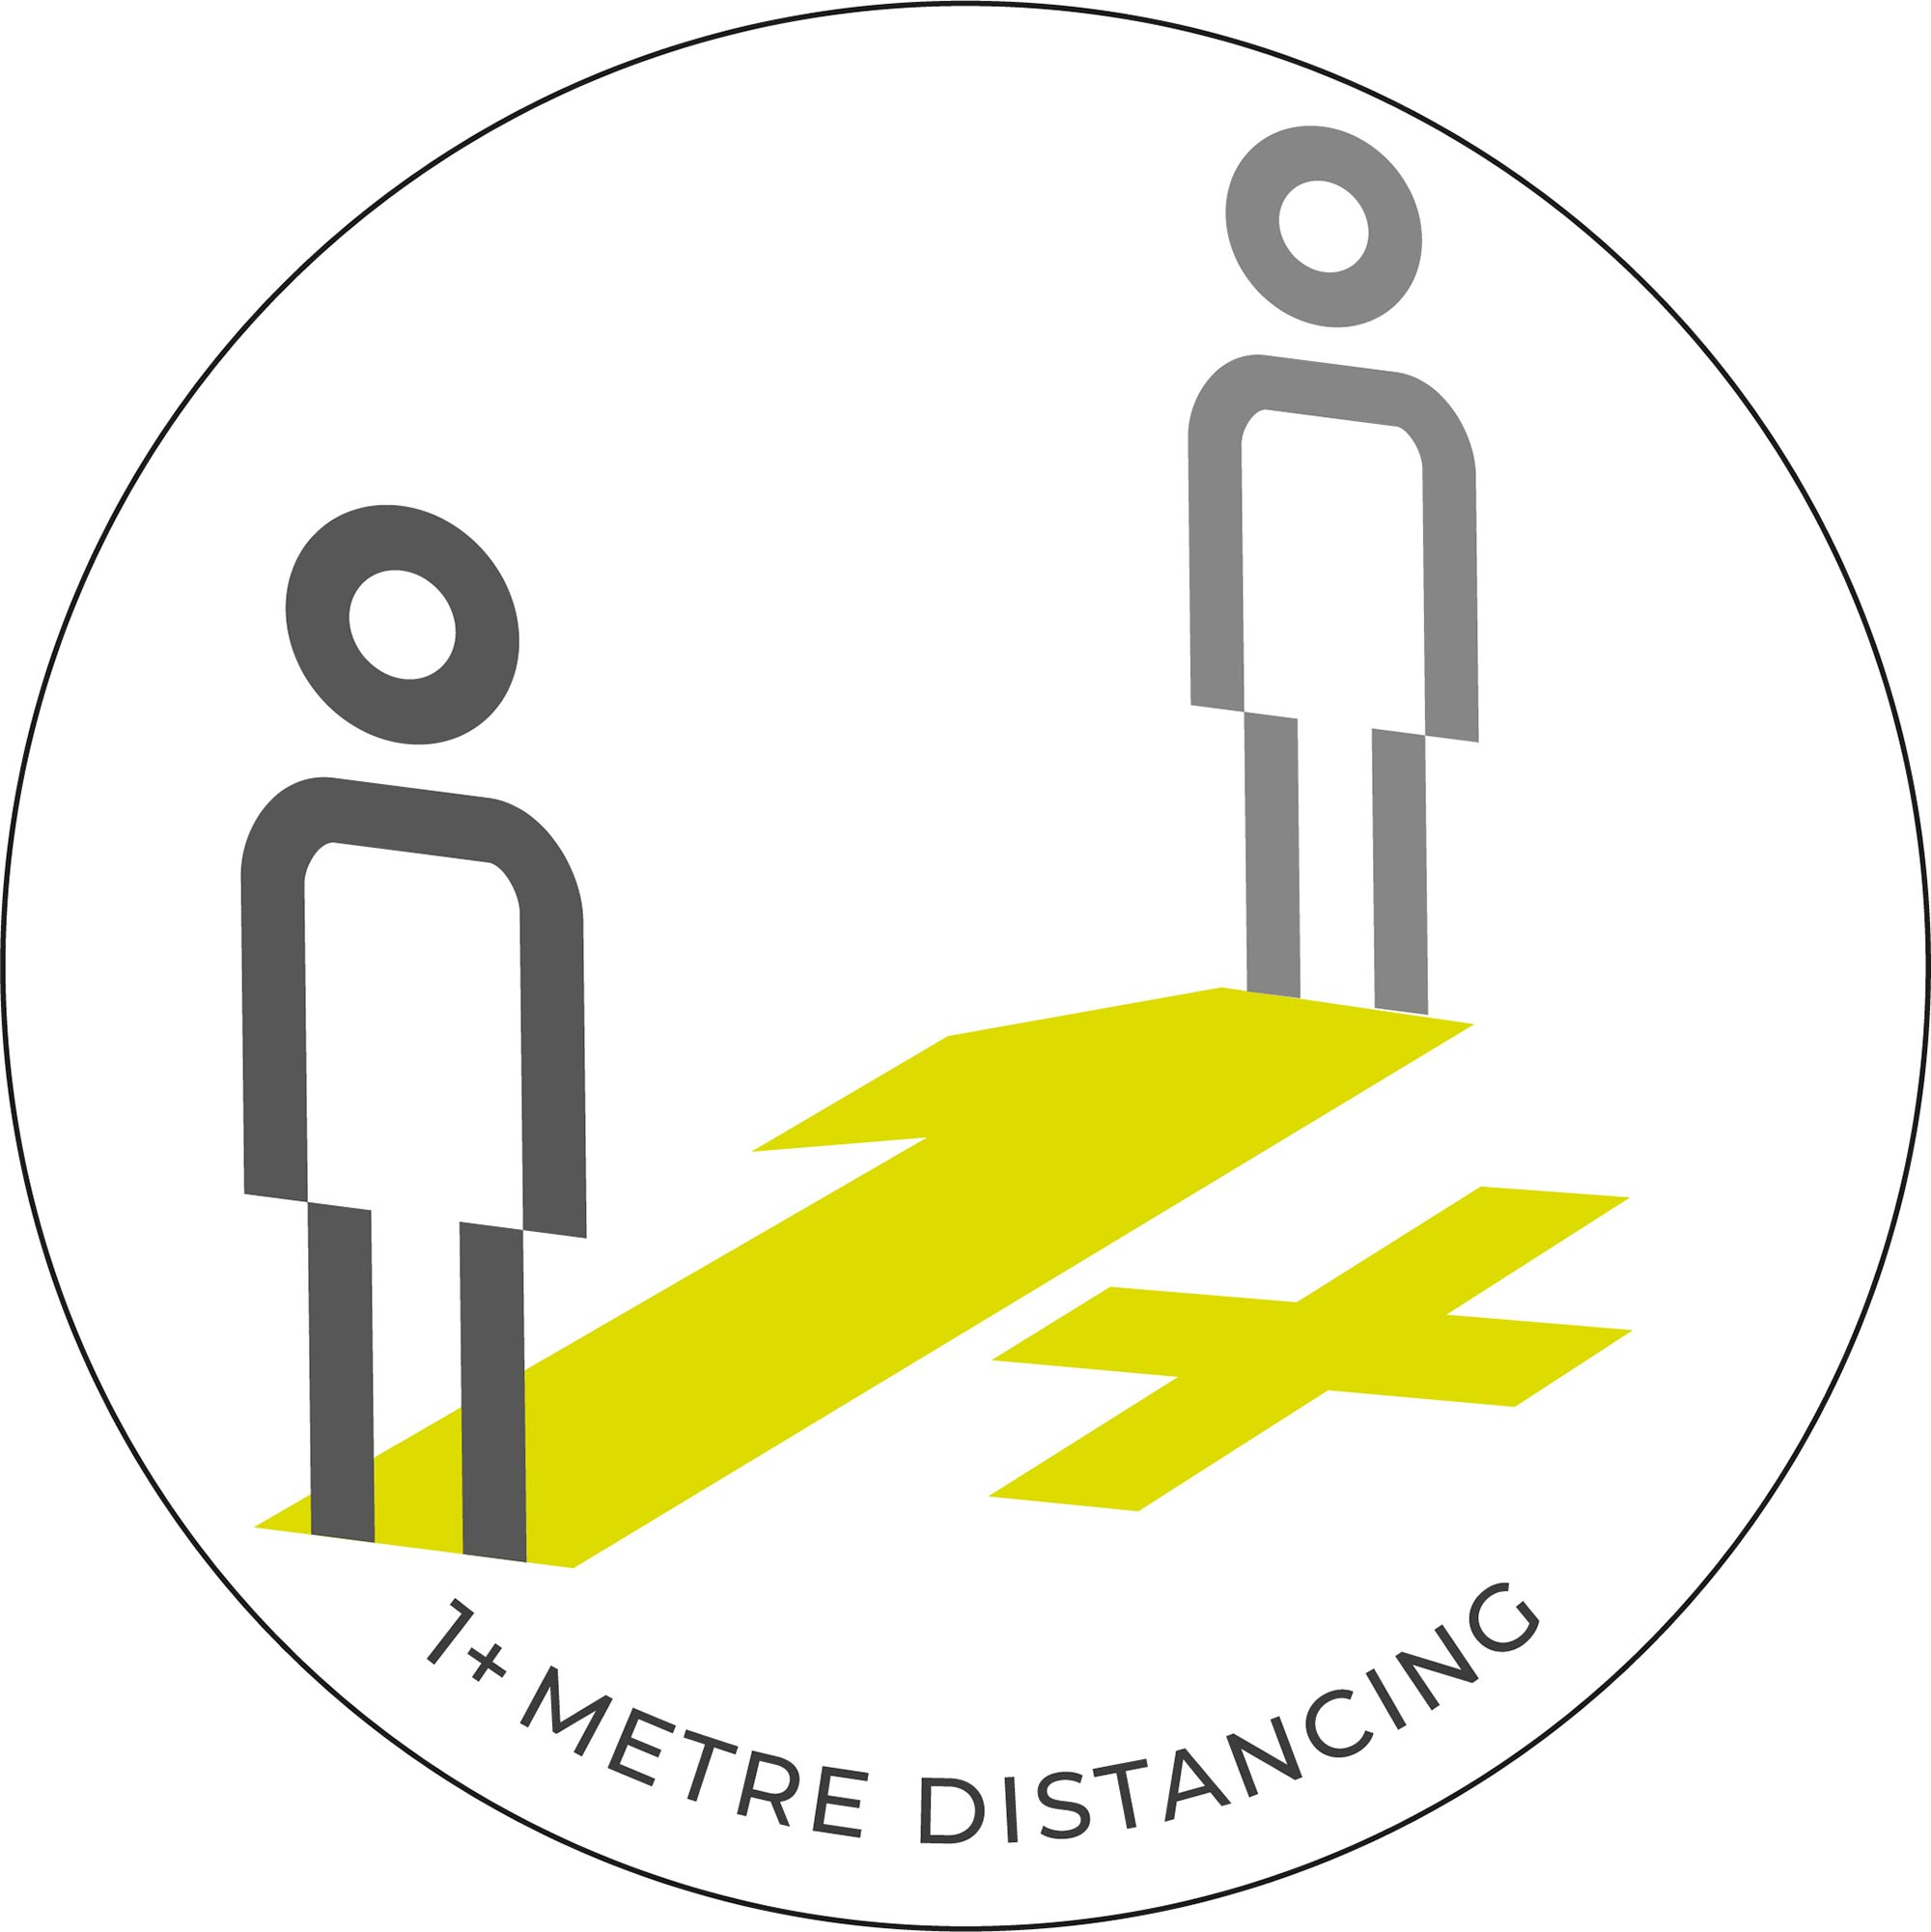 1 Metre Distancing  - White Sticker